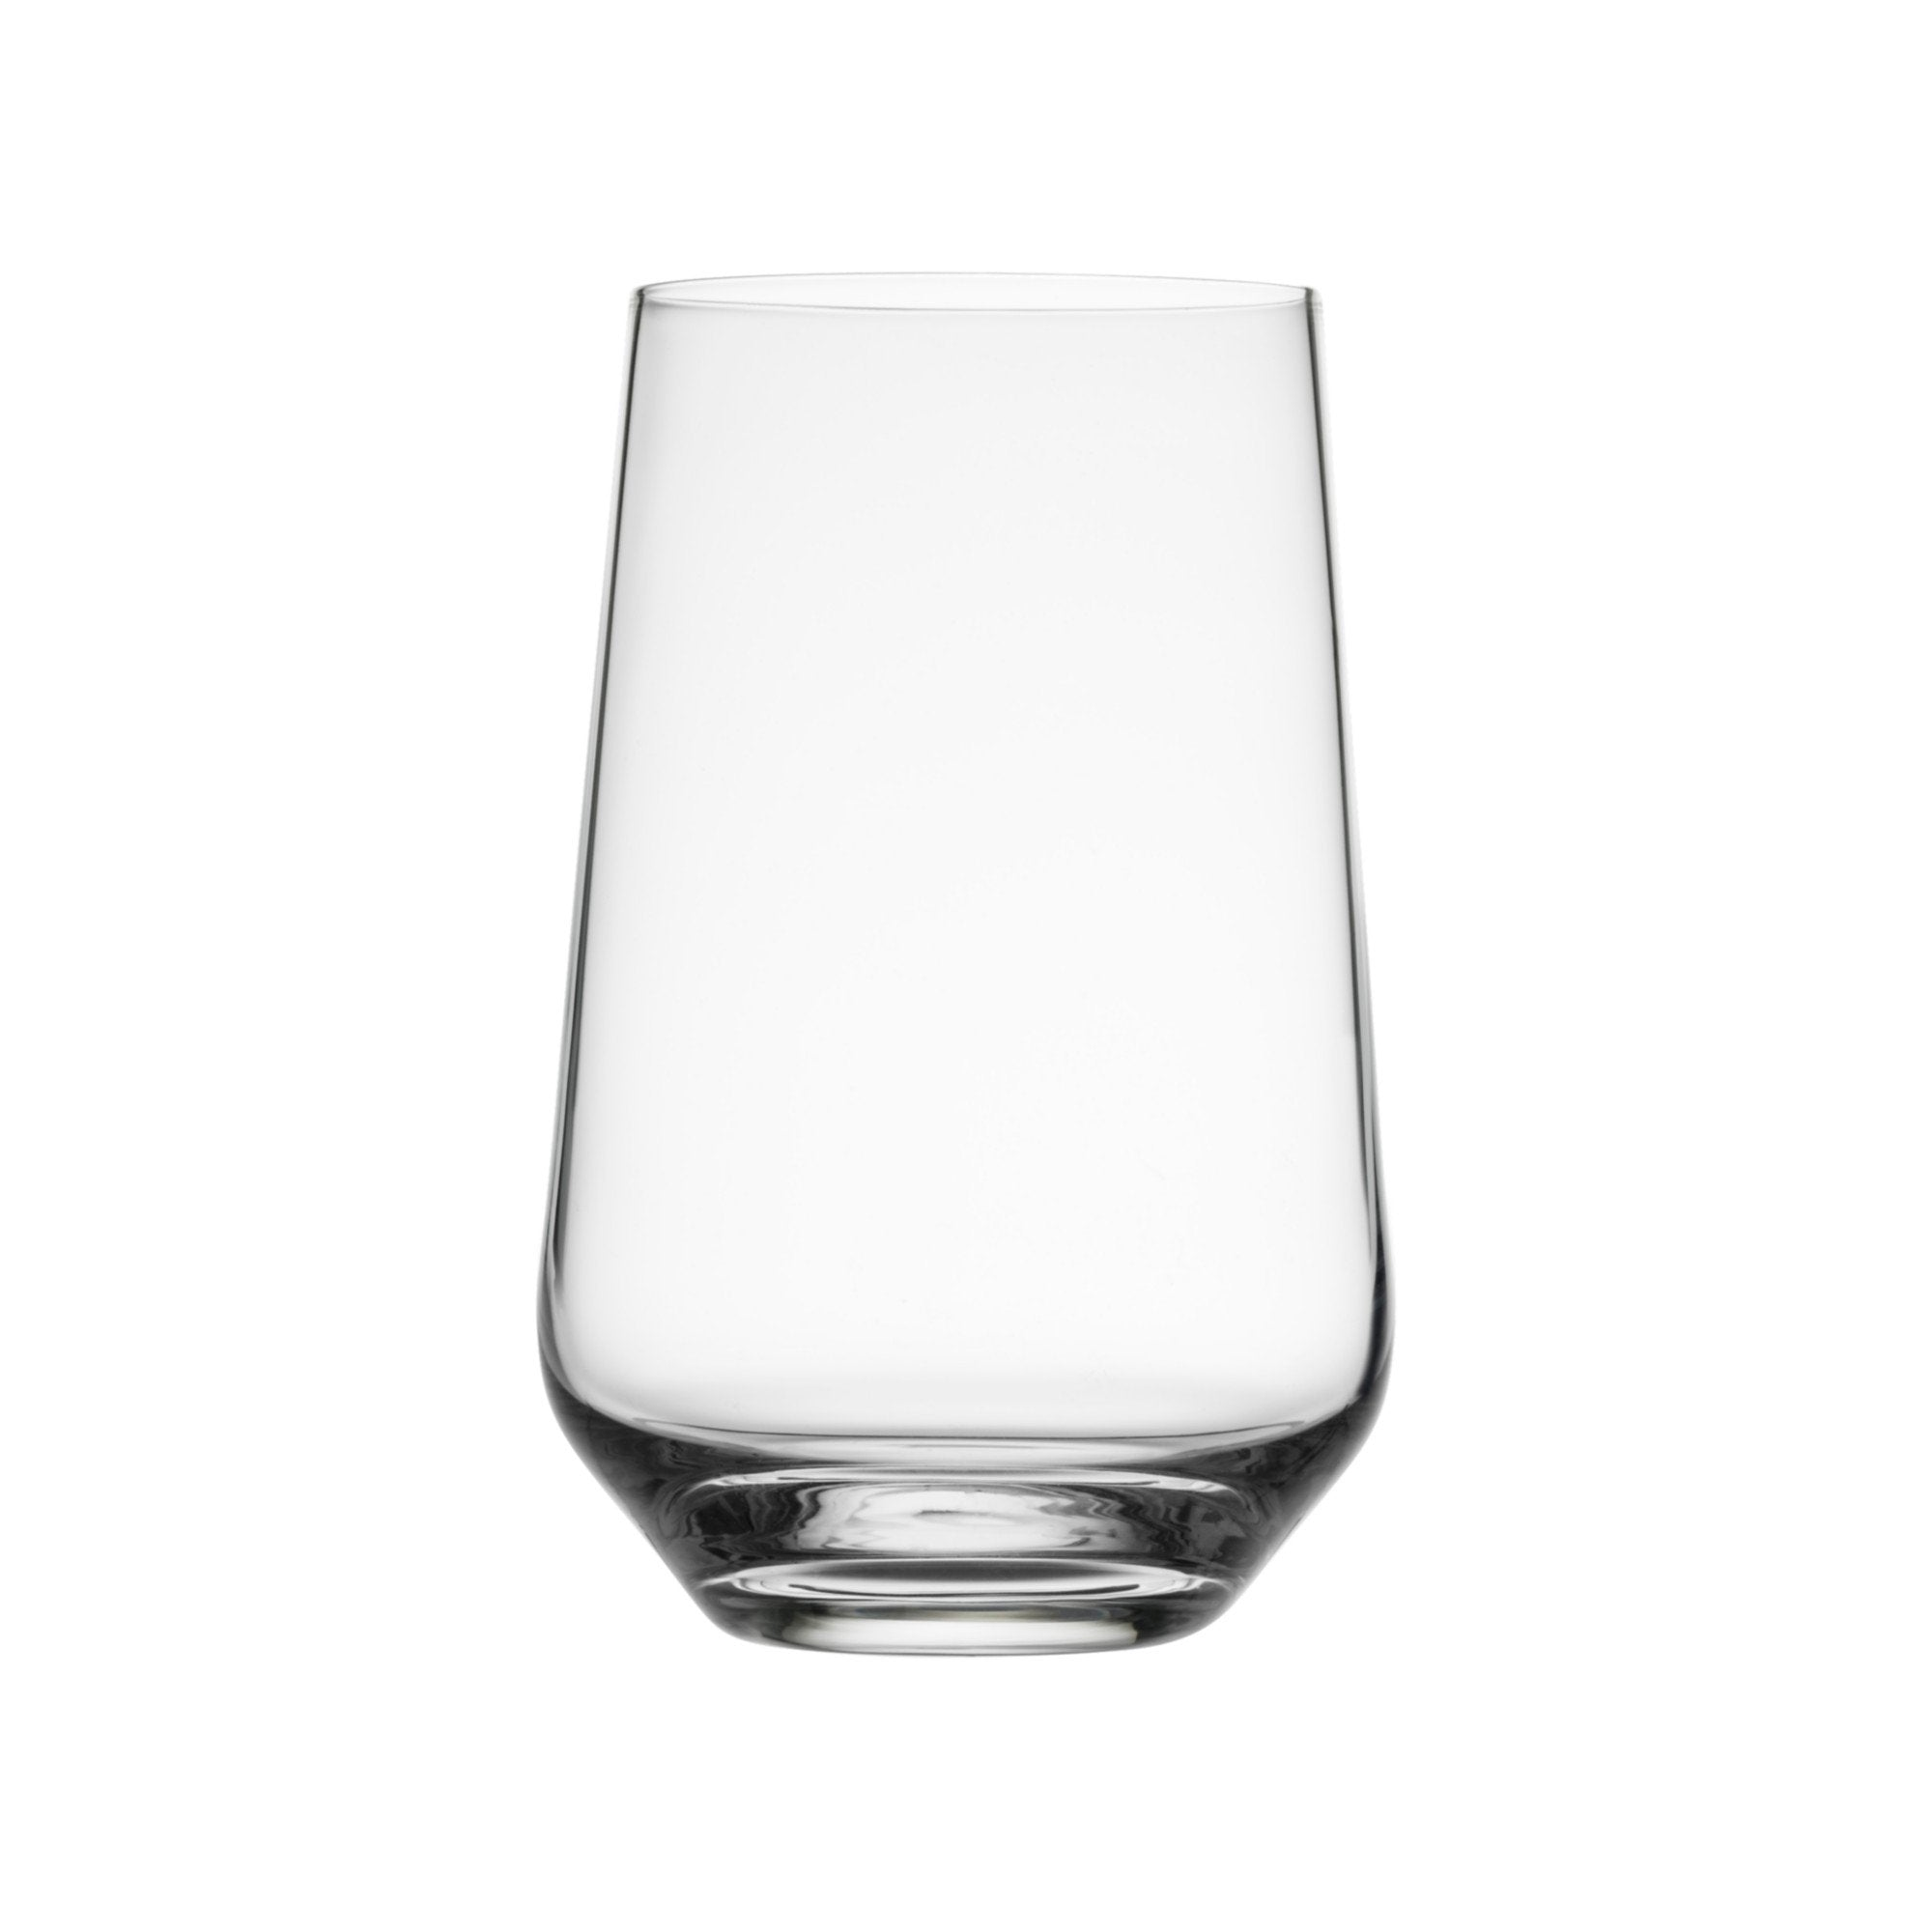 Iittala, Essence Universal Glass, Set of 2- Placewares